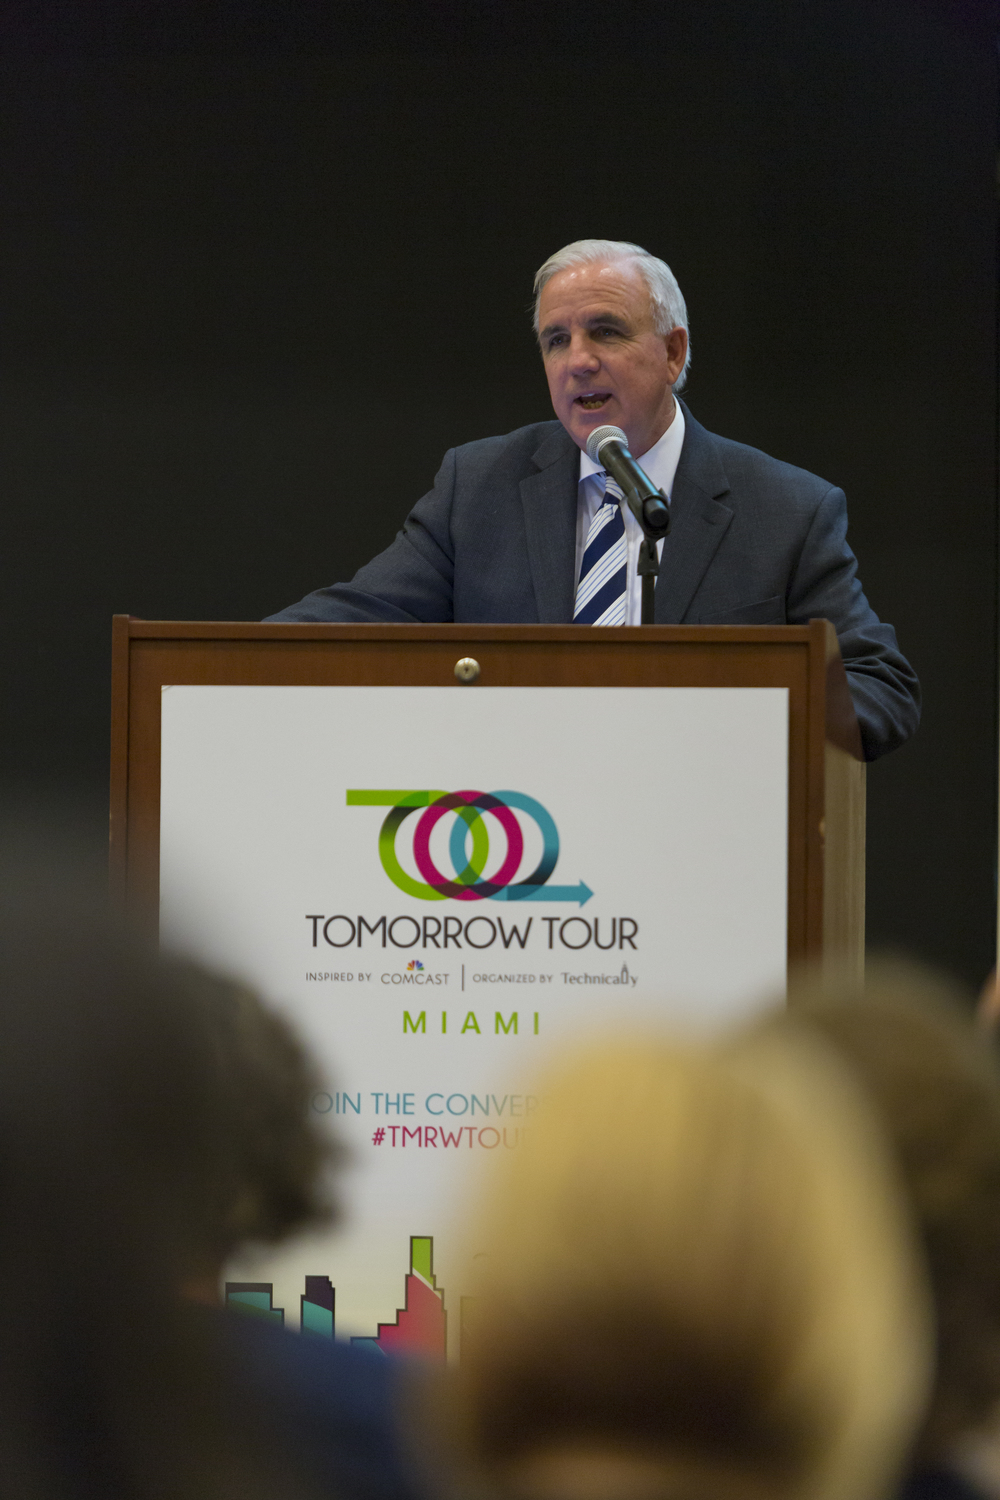 Tomorrow Tour Miami Comcast-181.jpg